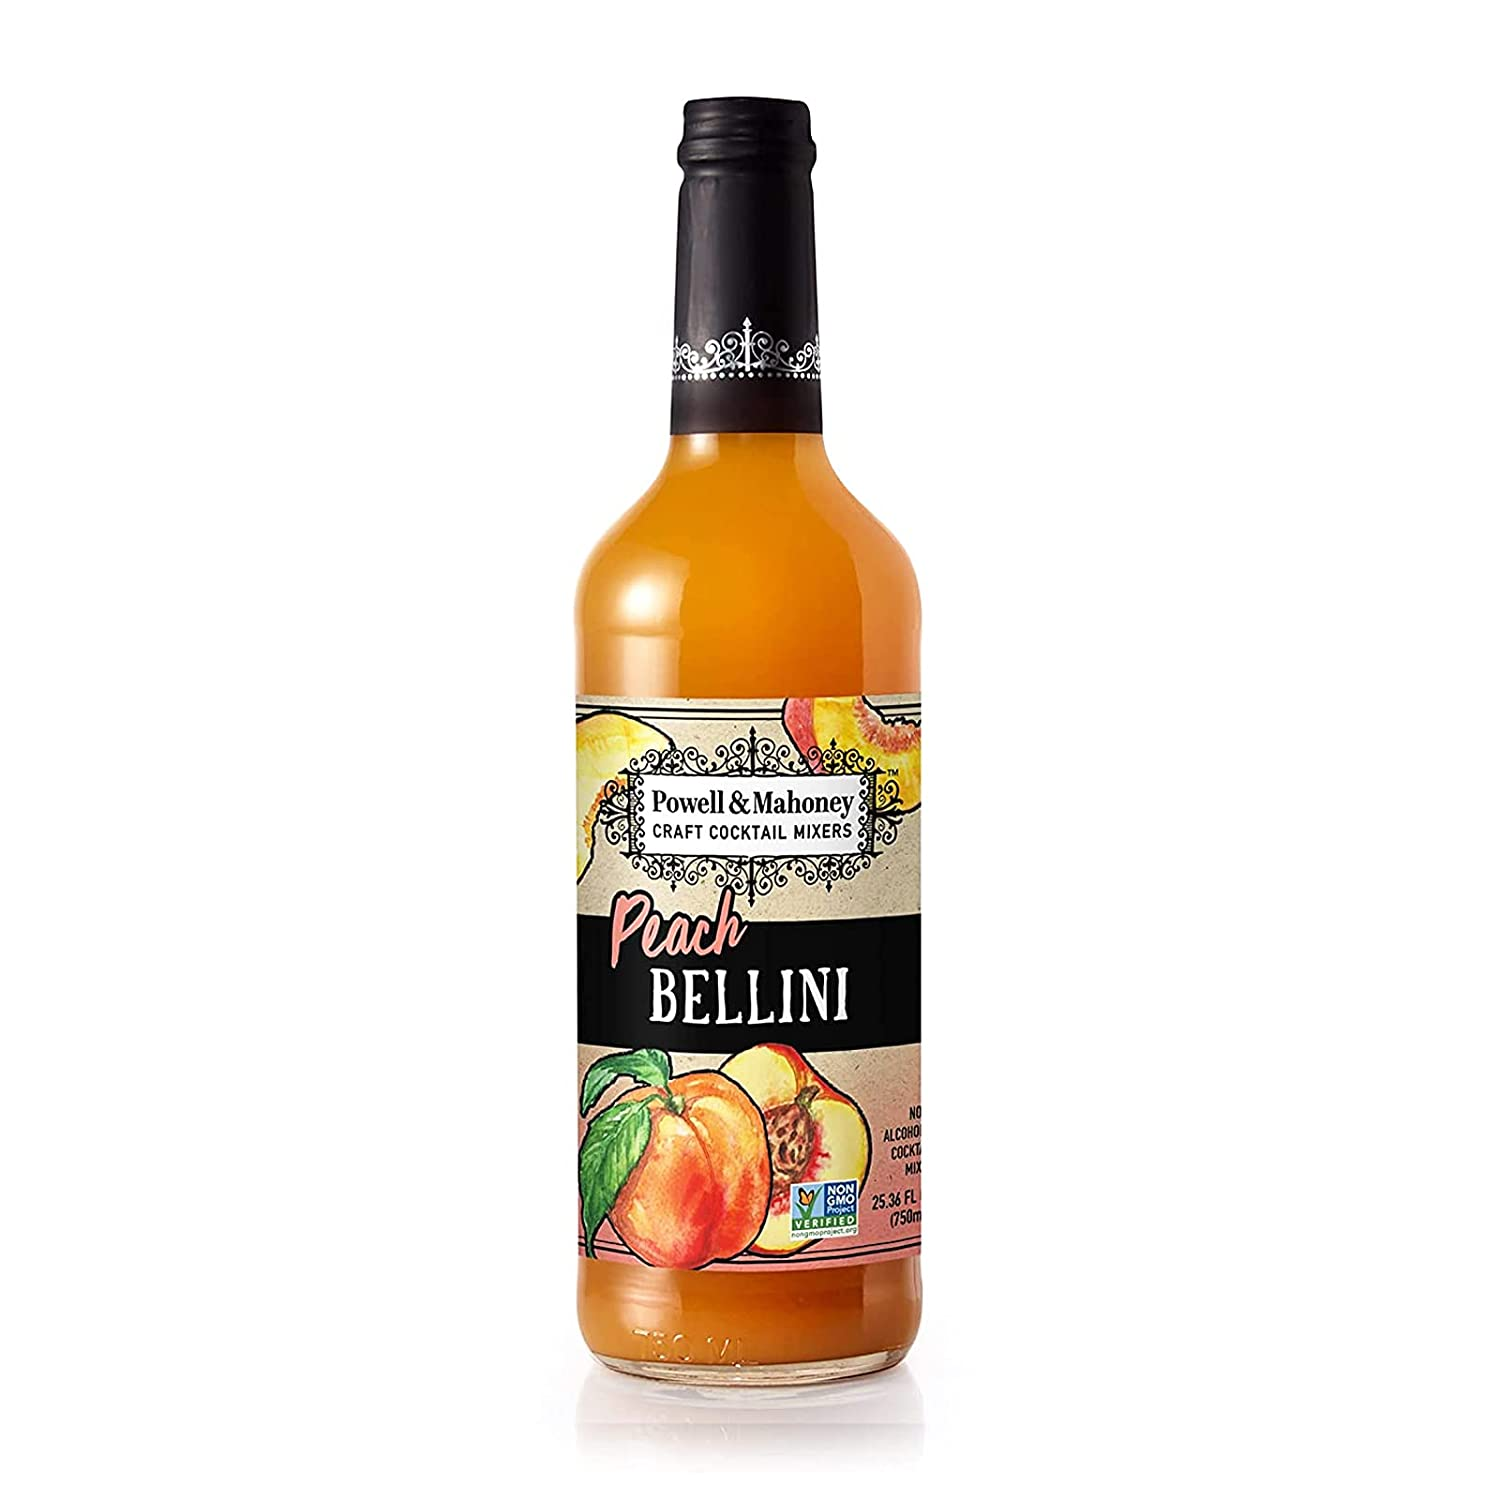 Powell & Mahoney Craft Cocktail Mixers - Peach Bellini - NA Cocktail Mix - Free from Artificial Sweeteners and Flavors - 25.36 oz - Non-GMO…